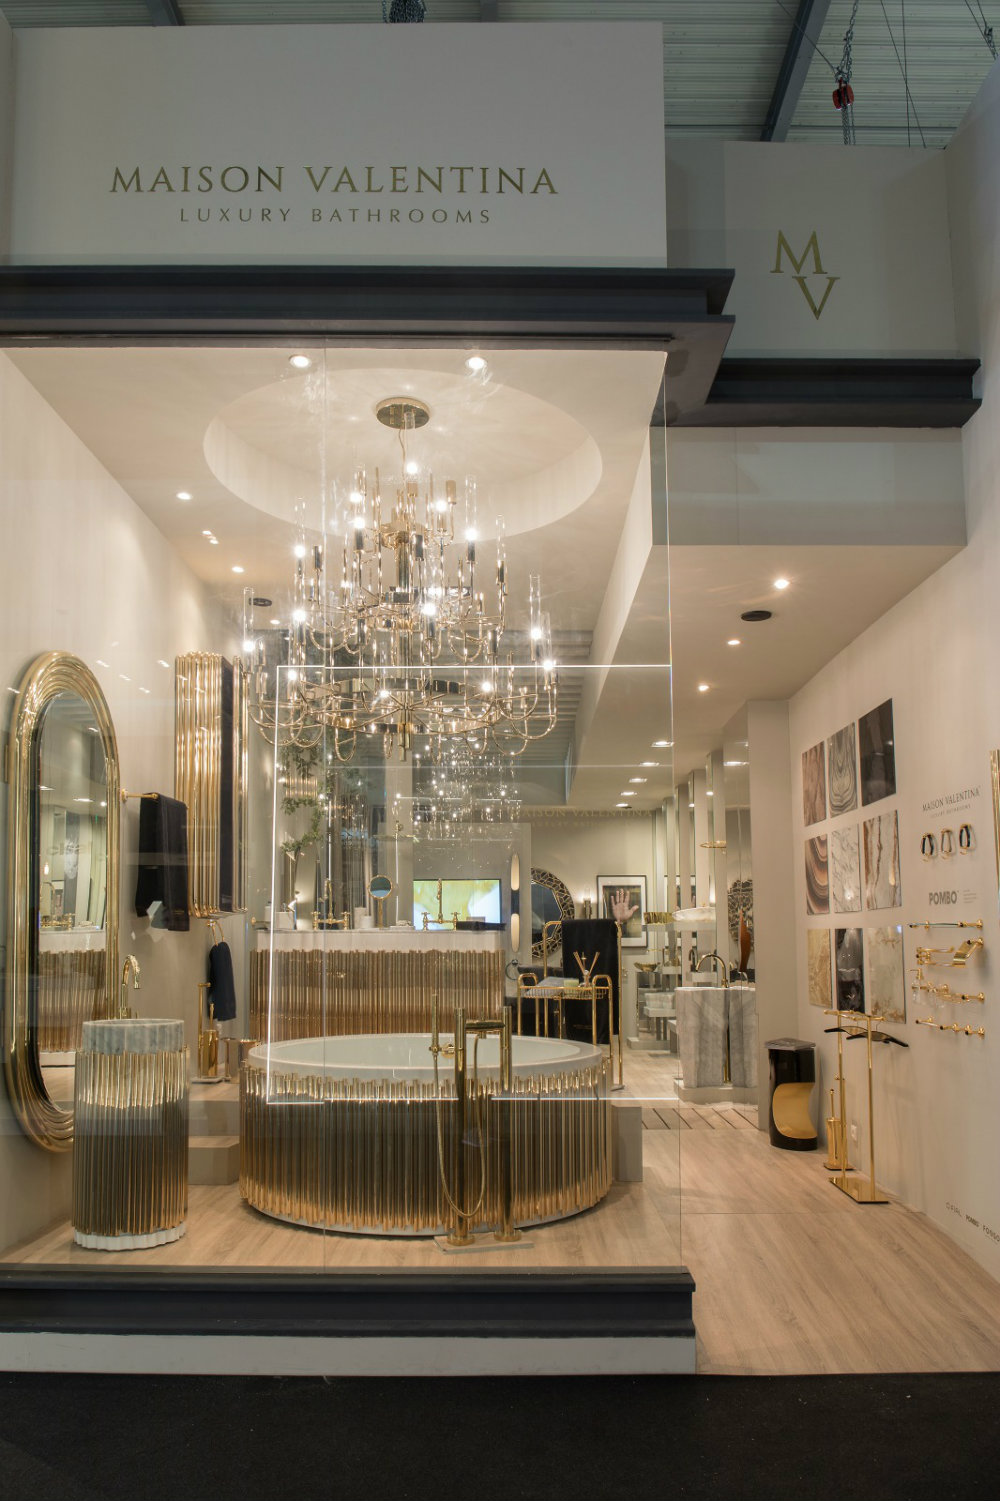 Top 5 Interior Design Trends from iSaloni 2018 03 iSaloni 2018 Top 5 Interior Design Trends from iSaloni 2018 Top 5 Interior Design Trends from iSaloni 2018 03